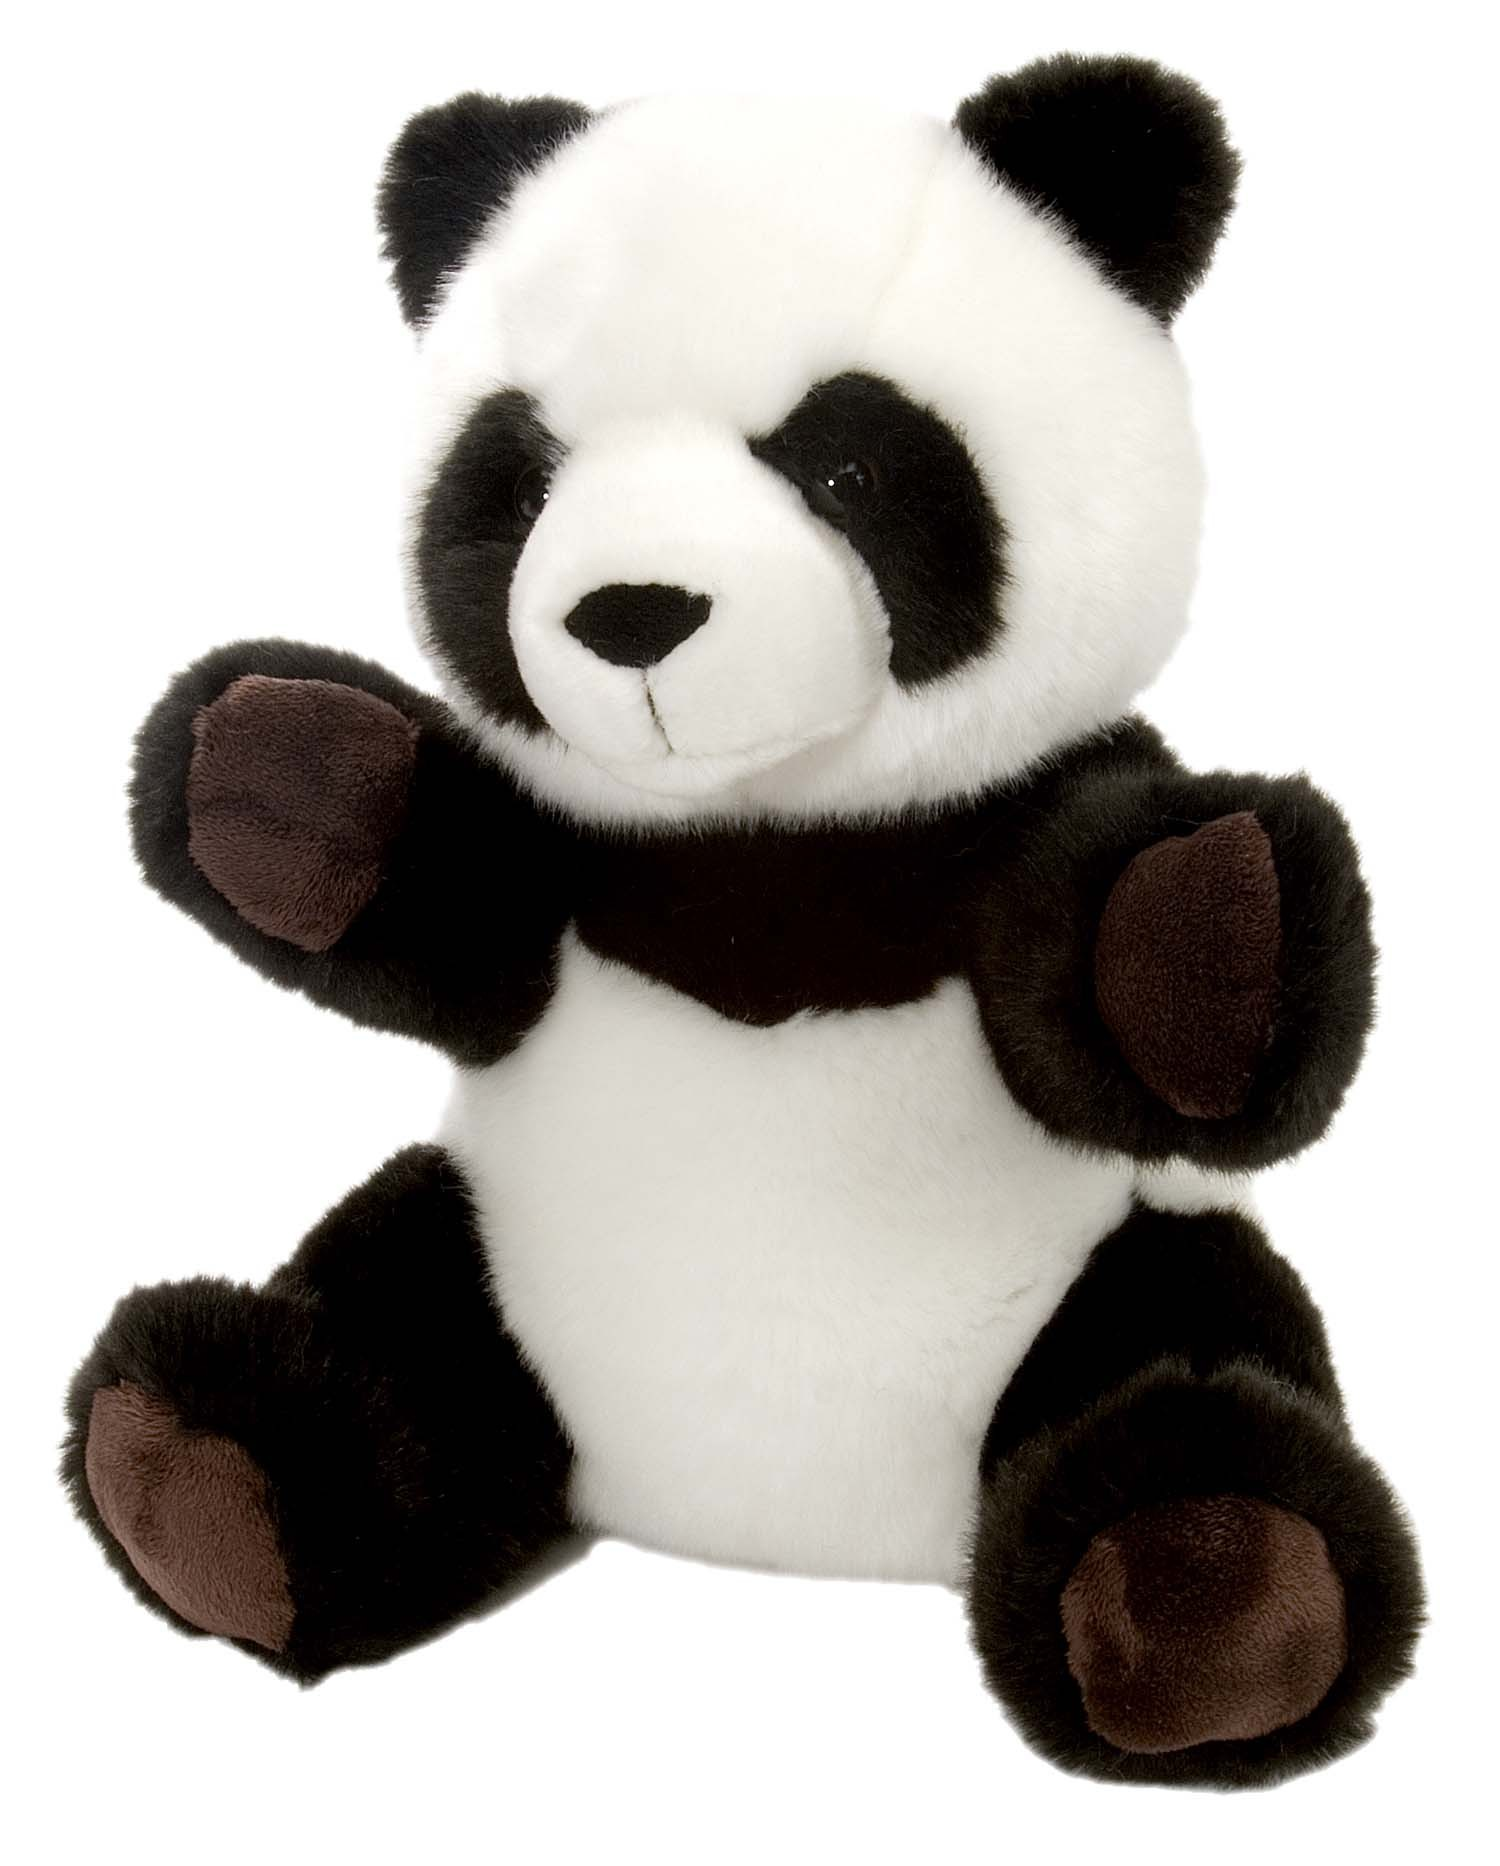 Cuddly Baby Panda - Fully Customisable Plush